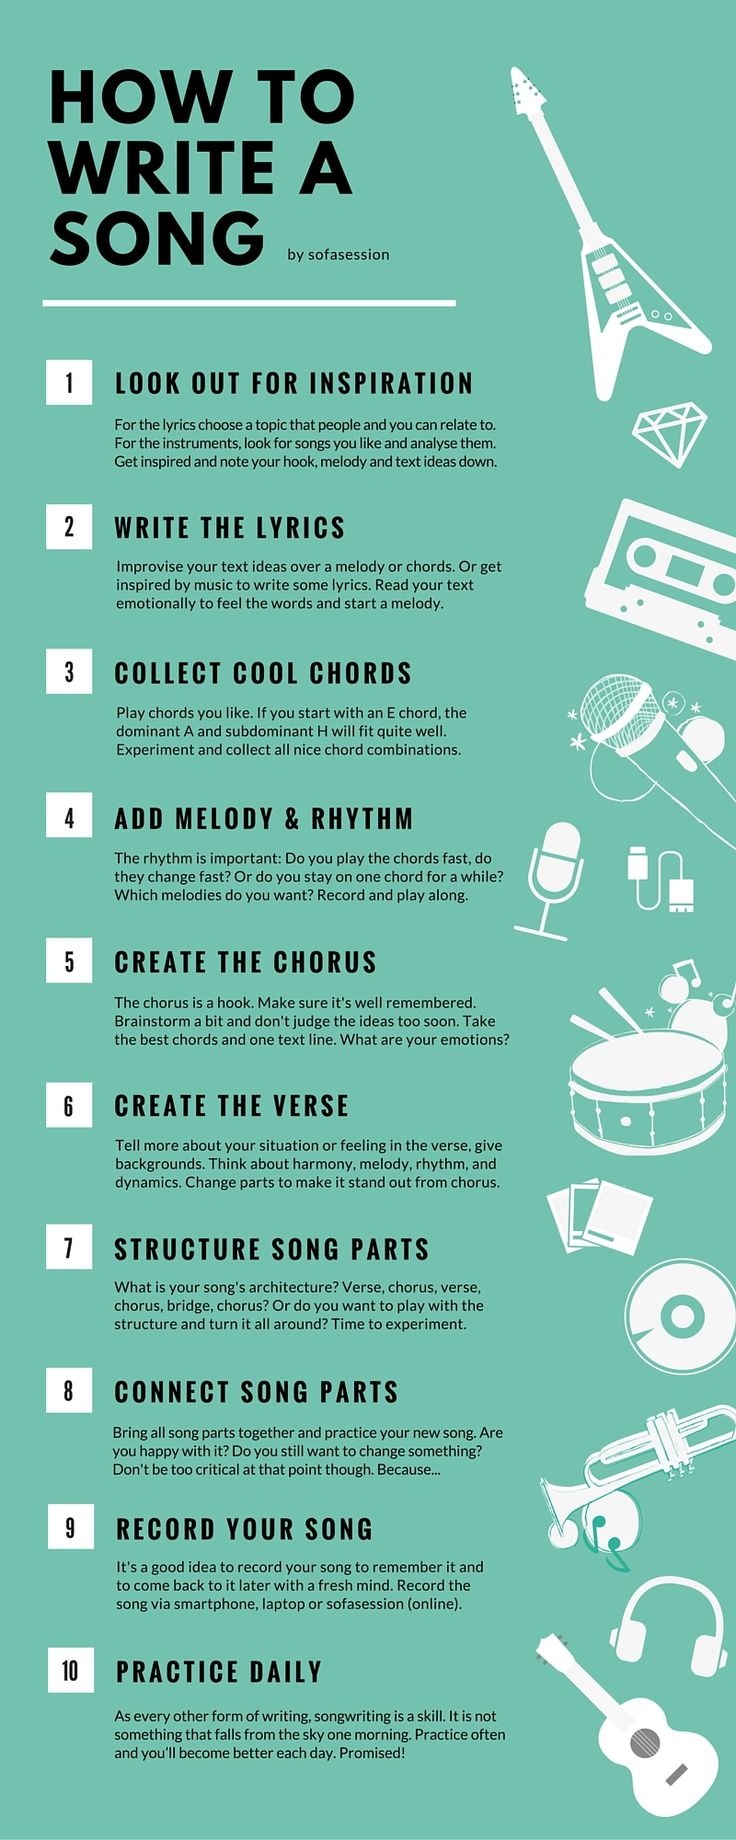 10 Best Songwriting Software That You Can Use to Create Wonderful Songs